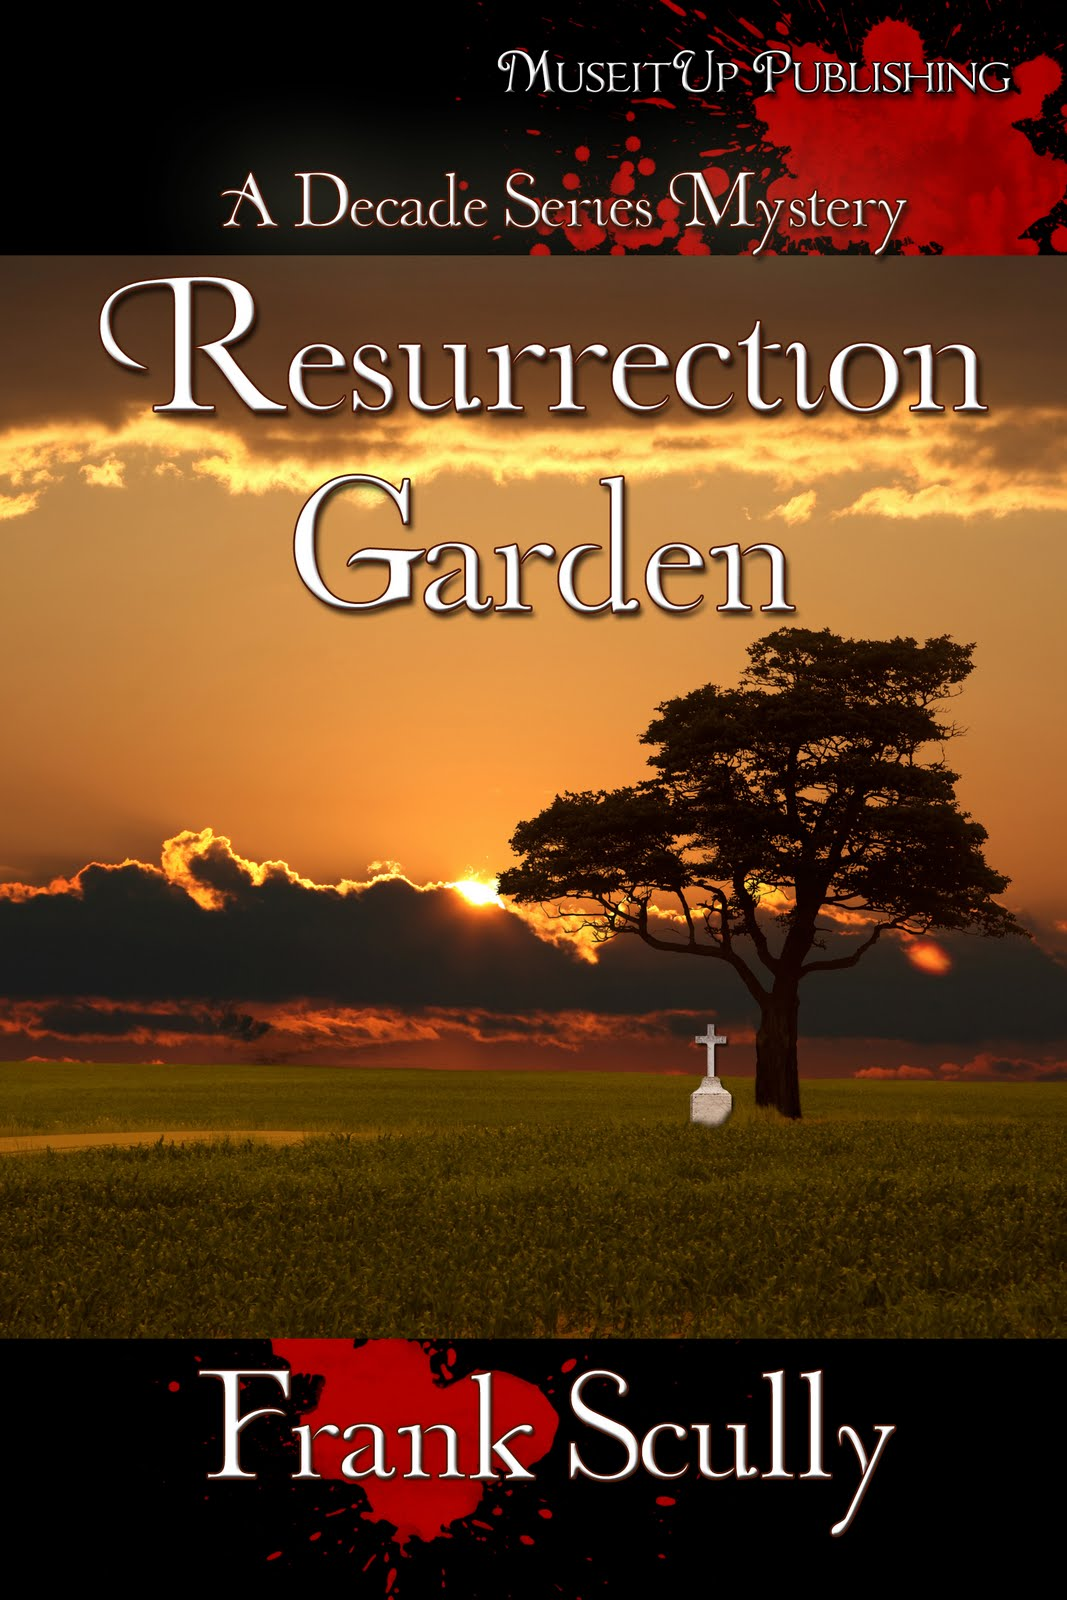 Book Review and Giveaway: Resurrection Garden by Frank Scully